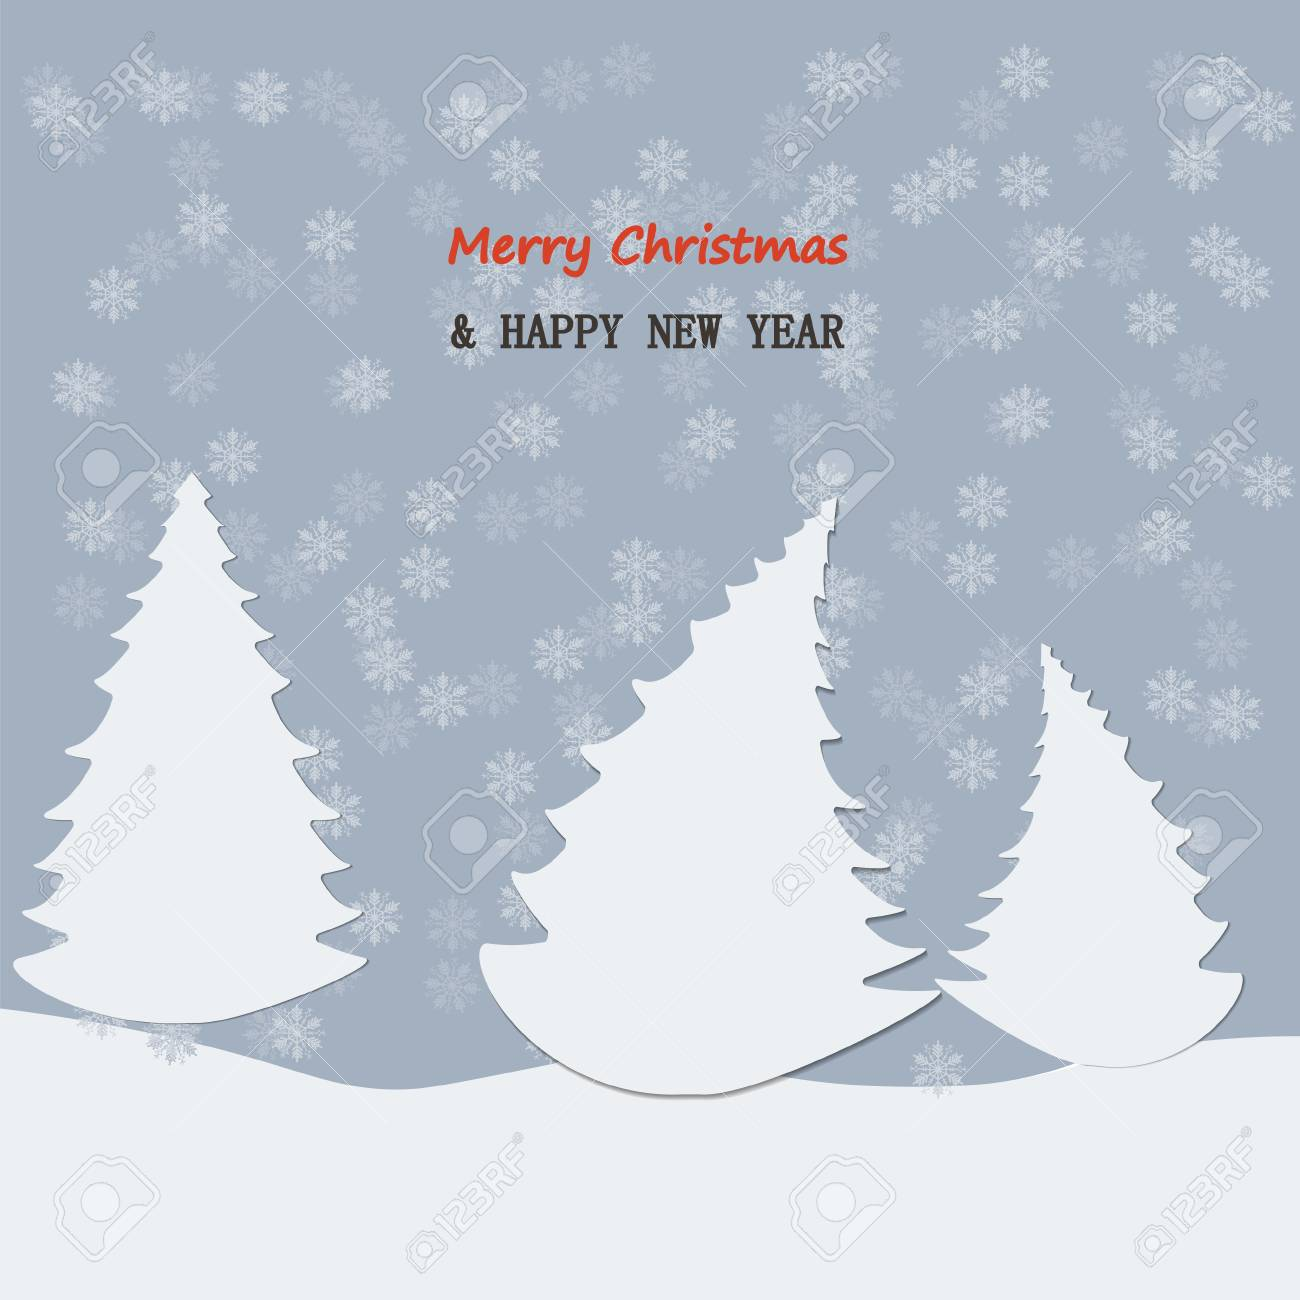 christmas and new year greeting card blurred background wallpaper stock photo 69707580